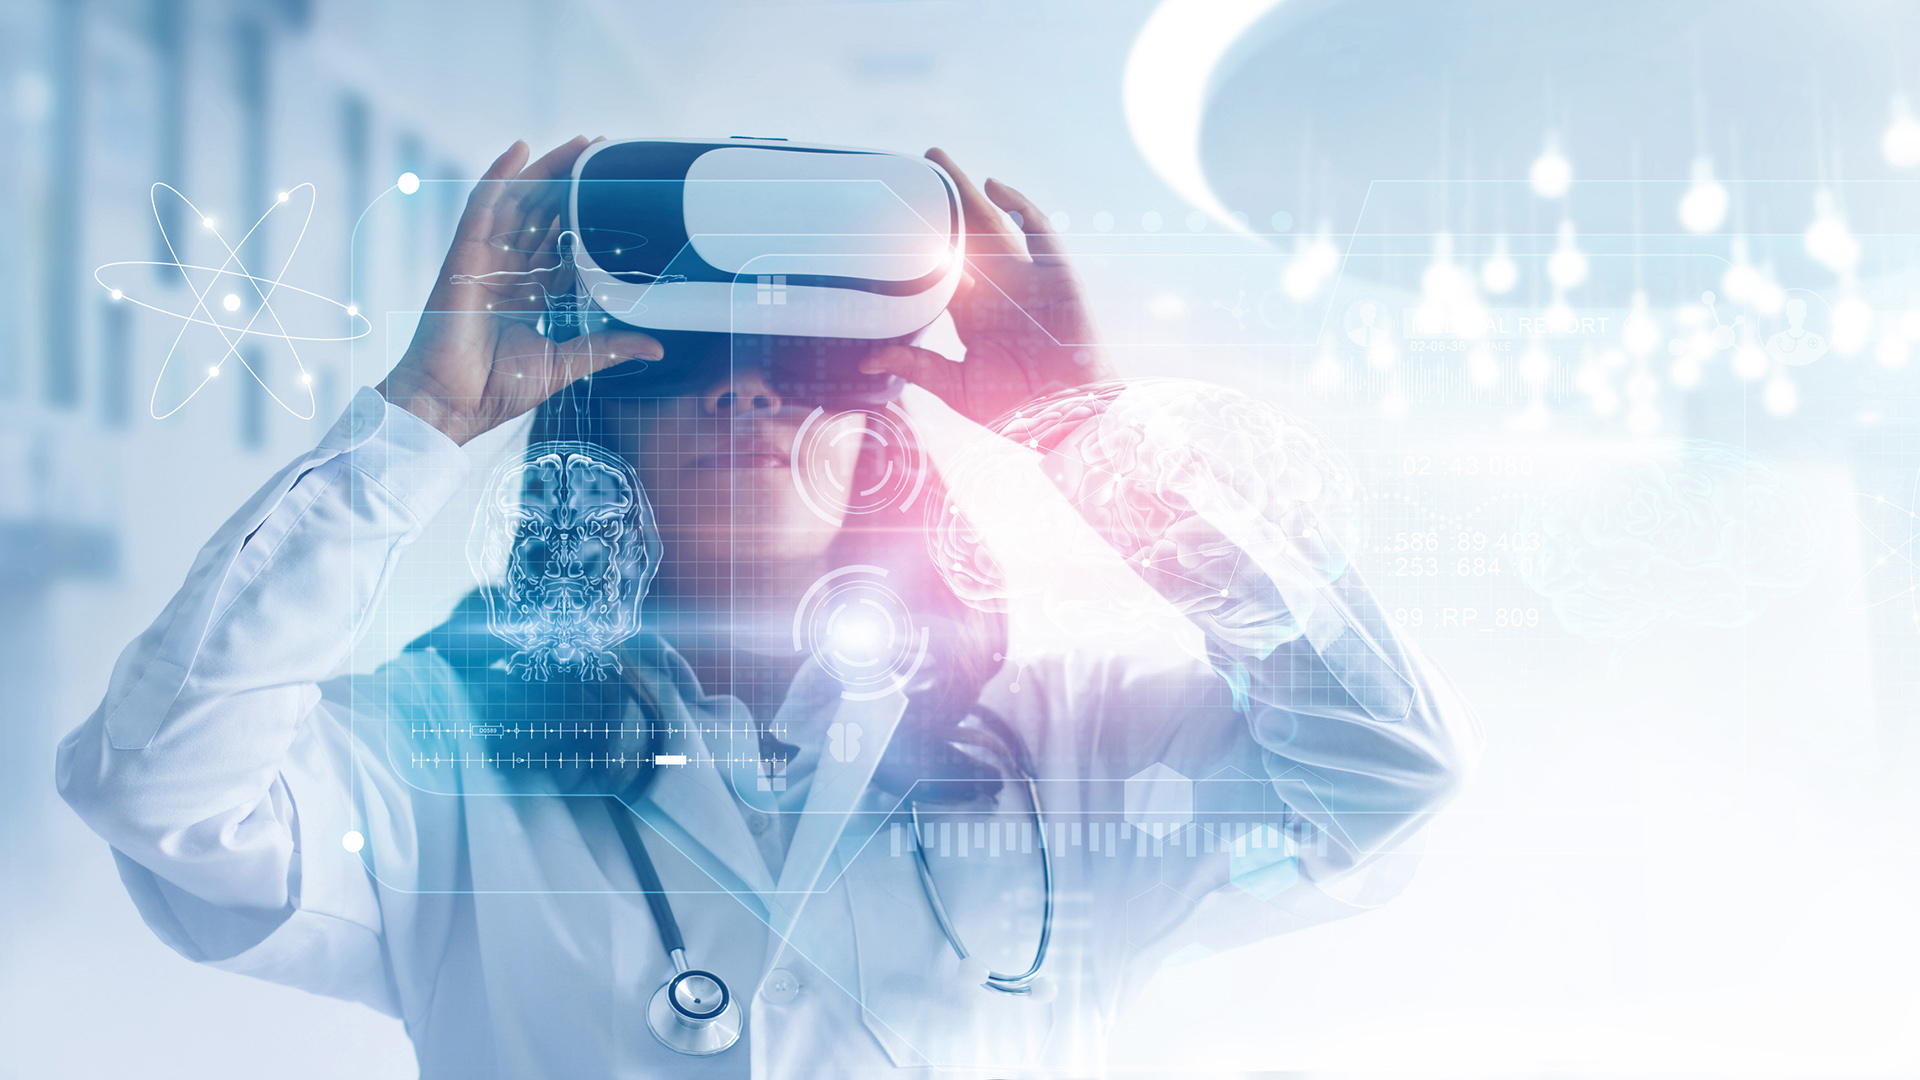 The 'patient of the future' is driving radical innovation in healthcare